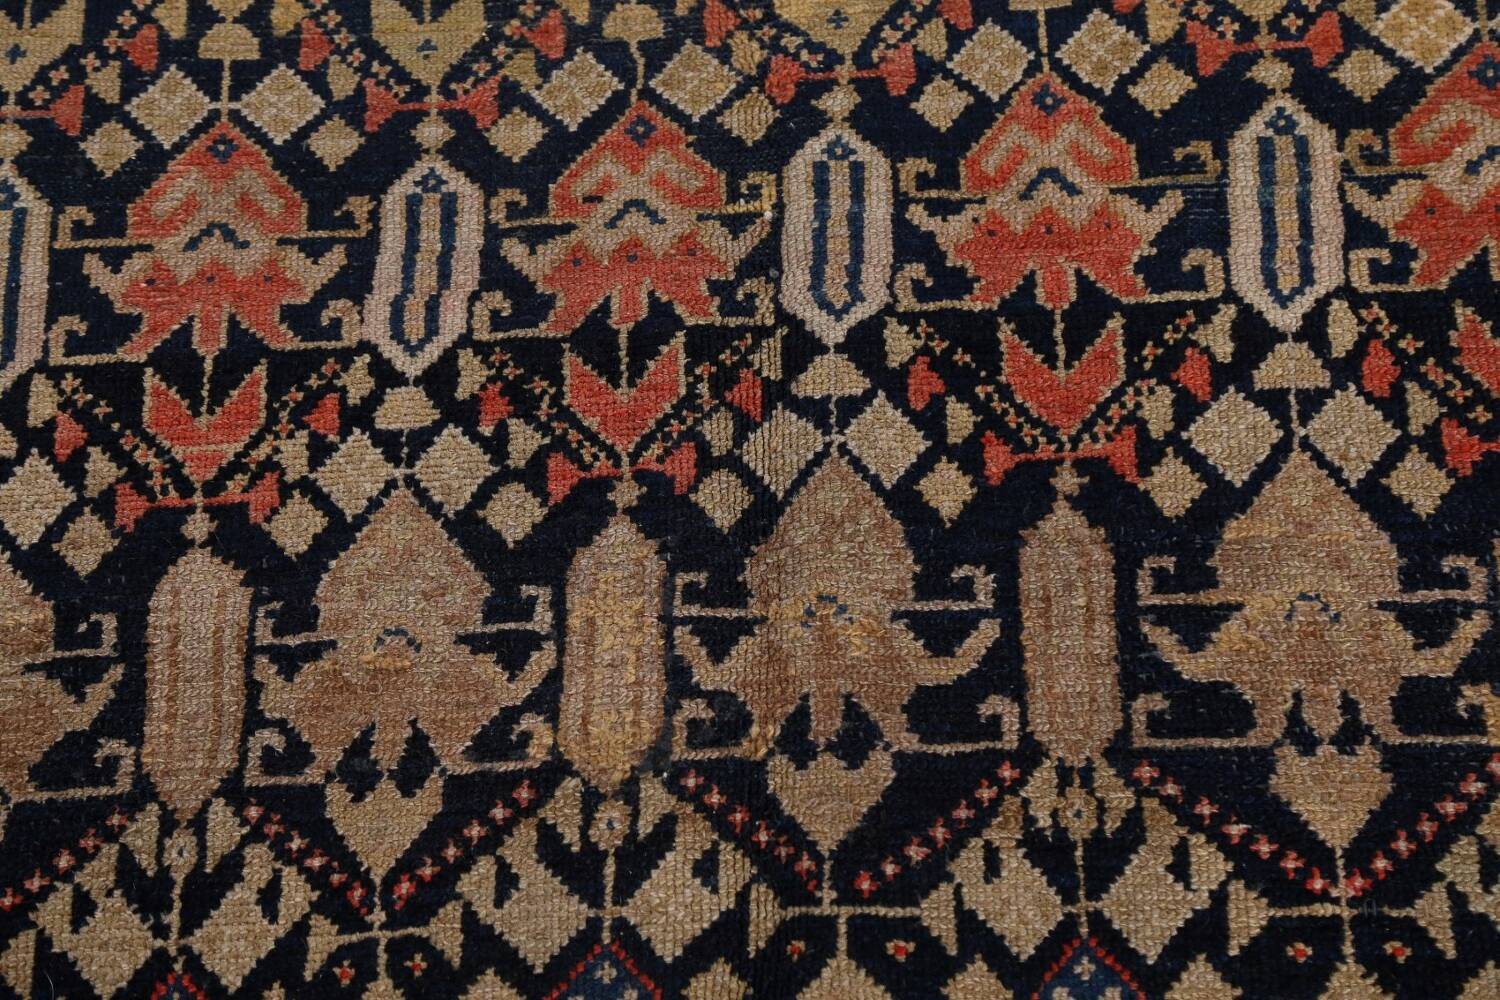 Pre-1900 Antique Vegetable Dye Malayer Persian Area Rug 5x11 image 10